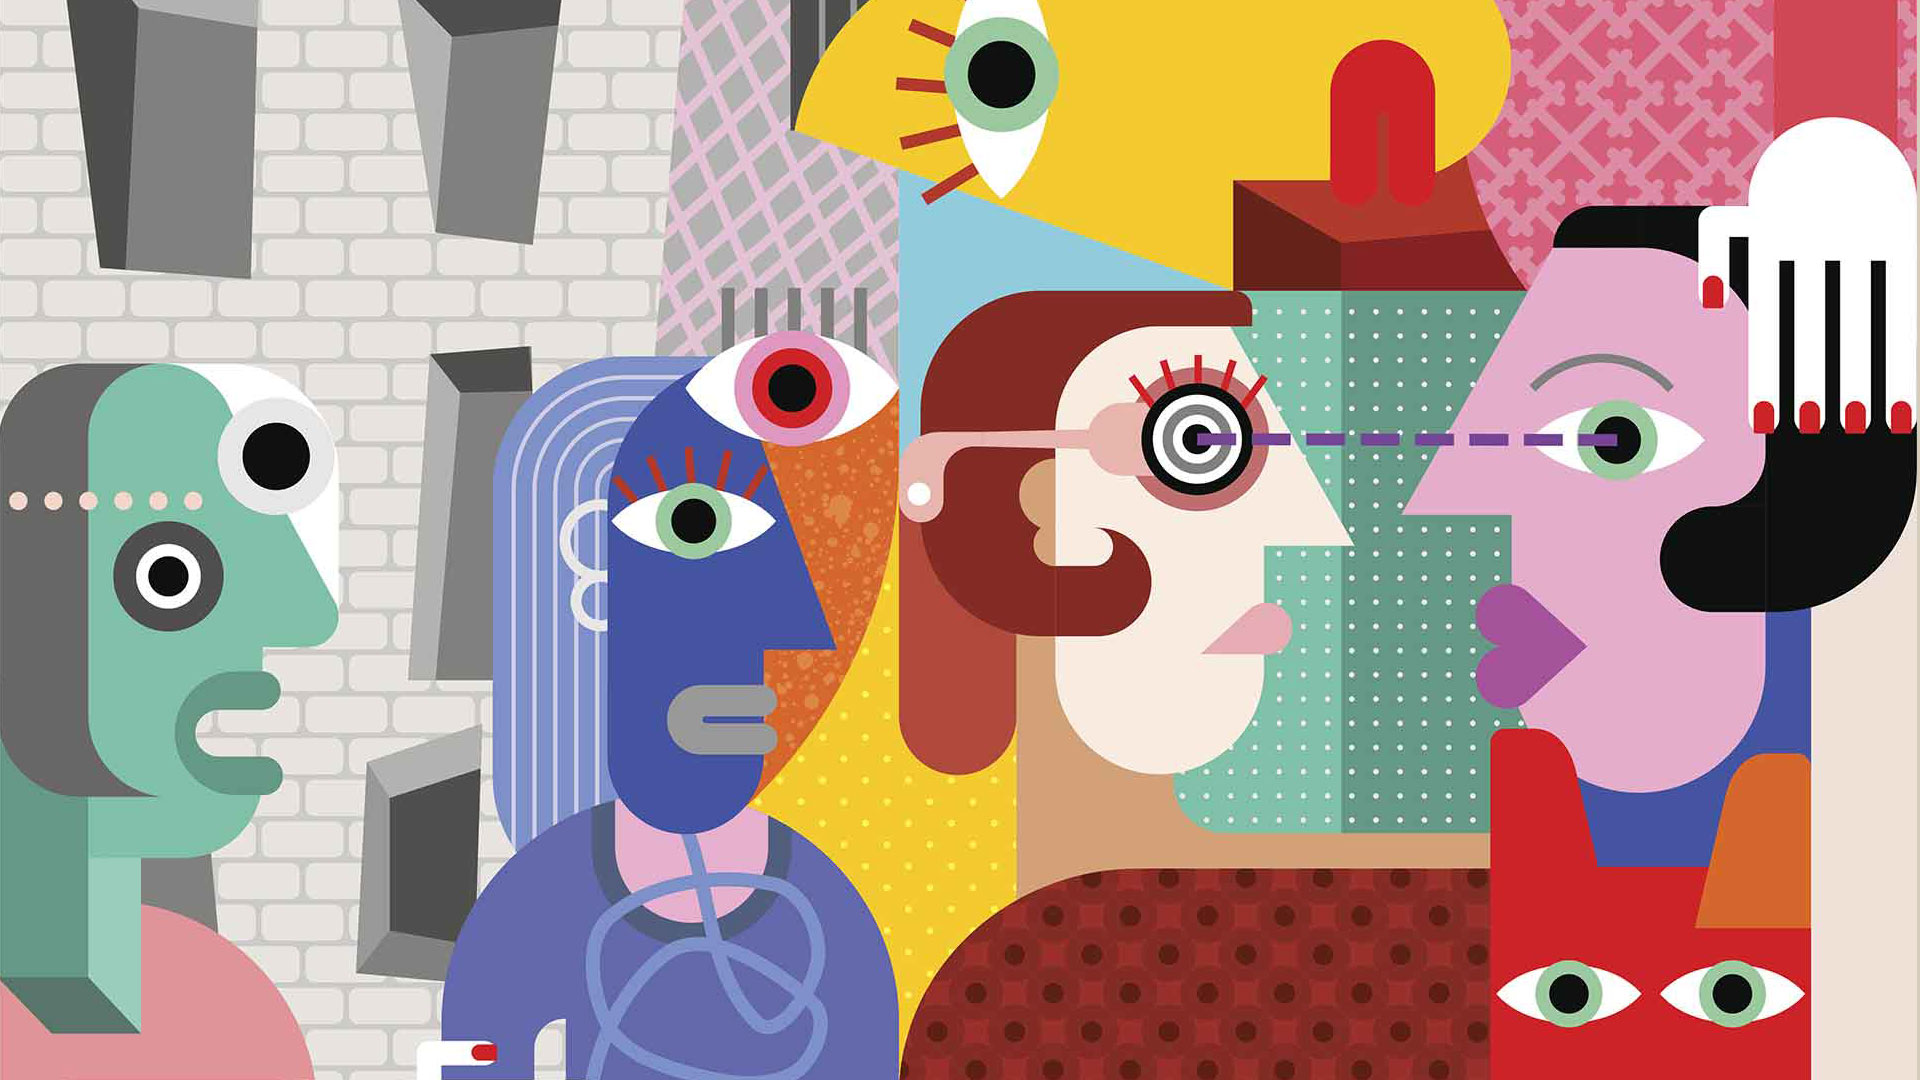 cubist illustration showing diverse people of different colour and gender